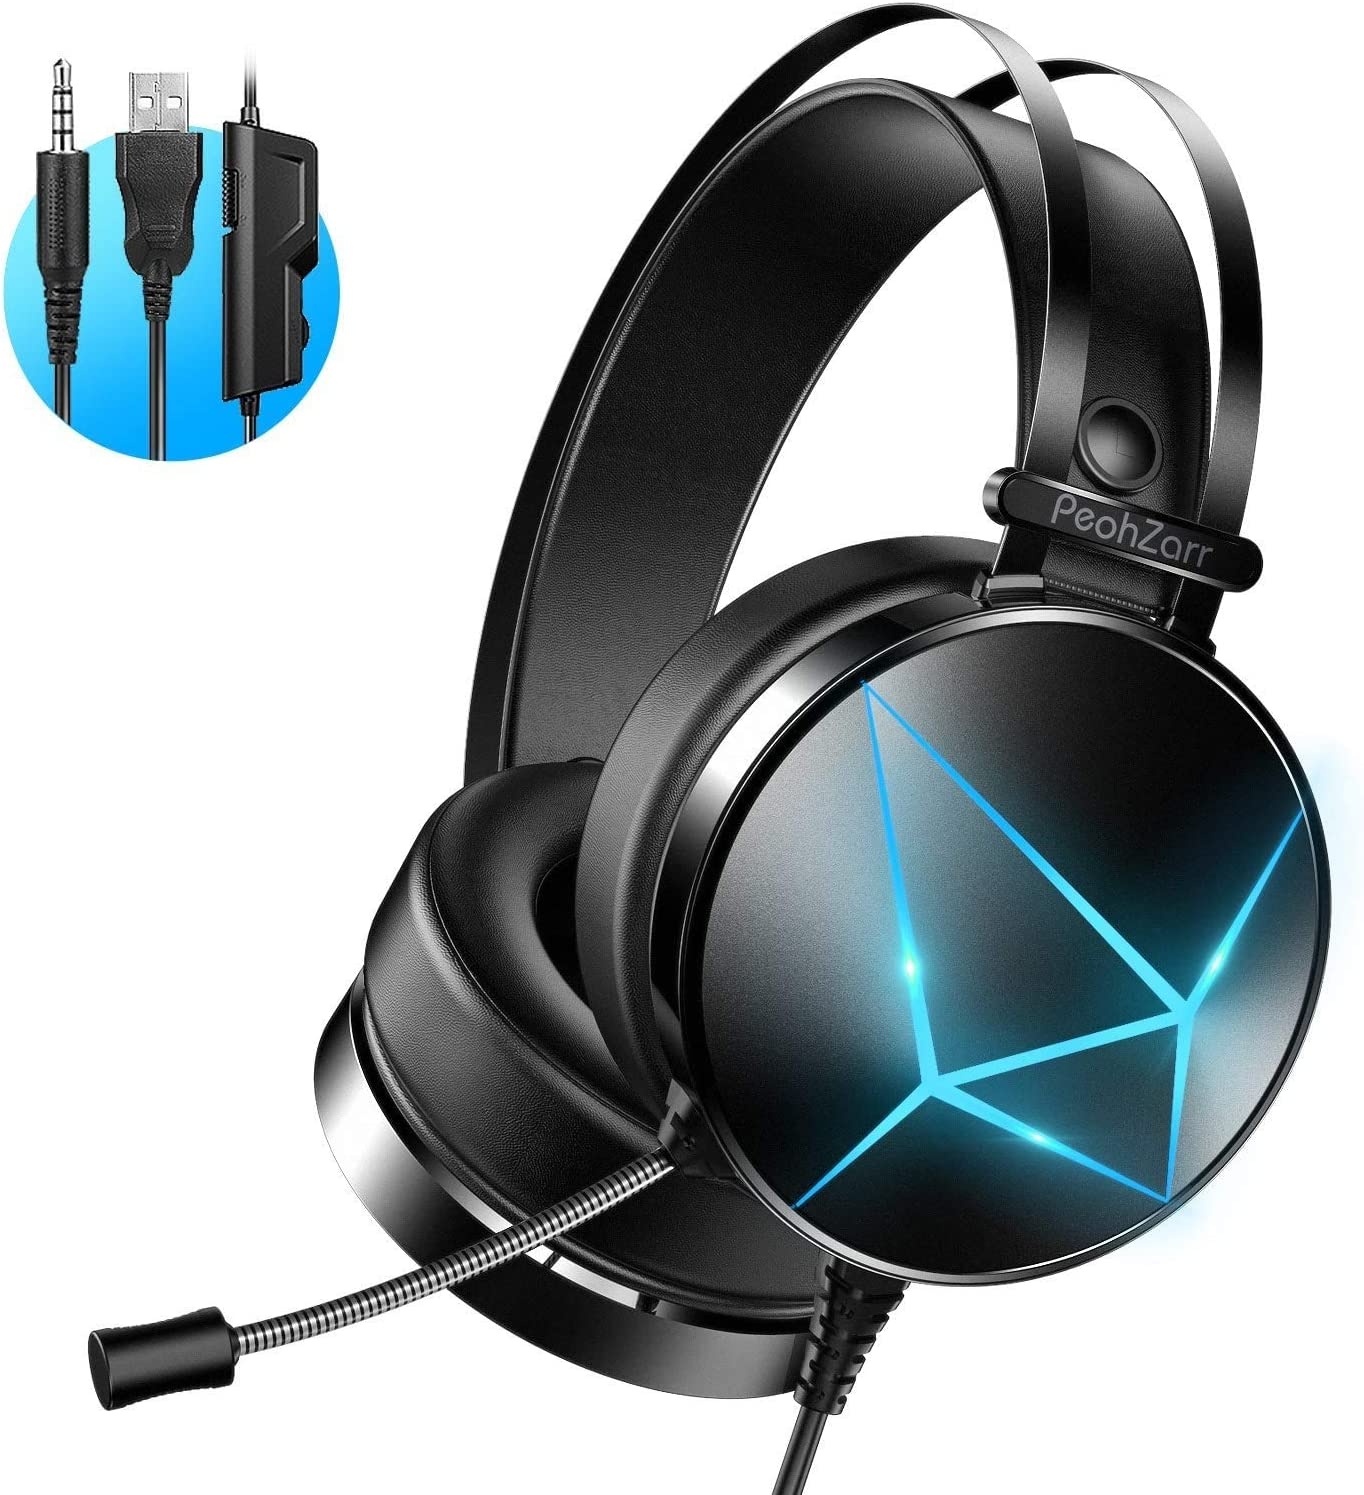 Amazon Com Peohzarr Gaming Headset One Headset Ps4 Headset With 7 1 Surround Sound Pc Headset With Mic Light Over Ear Headphones For One Controller Adapter Not Included Ps4 Nintendo Switch Ps2 Computers